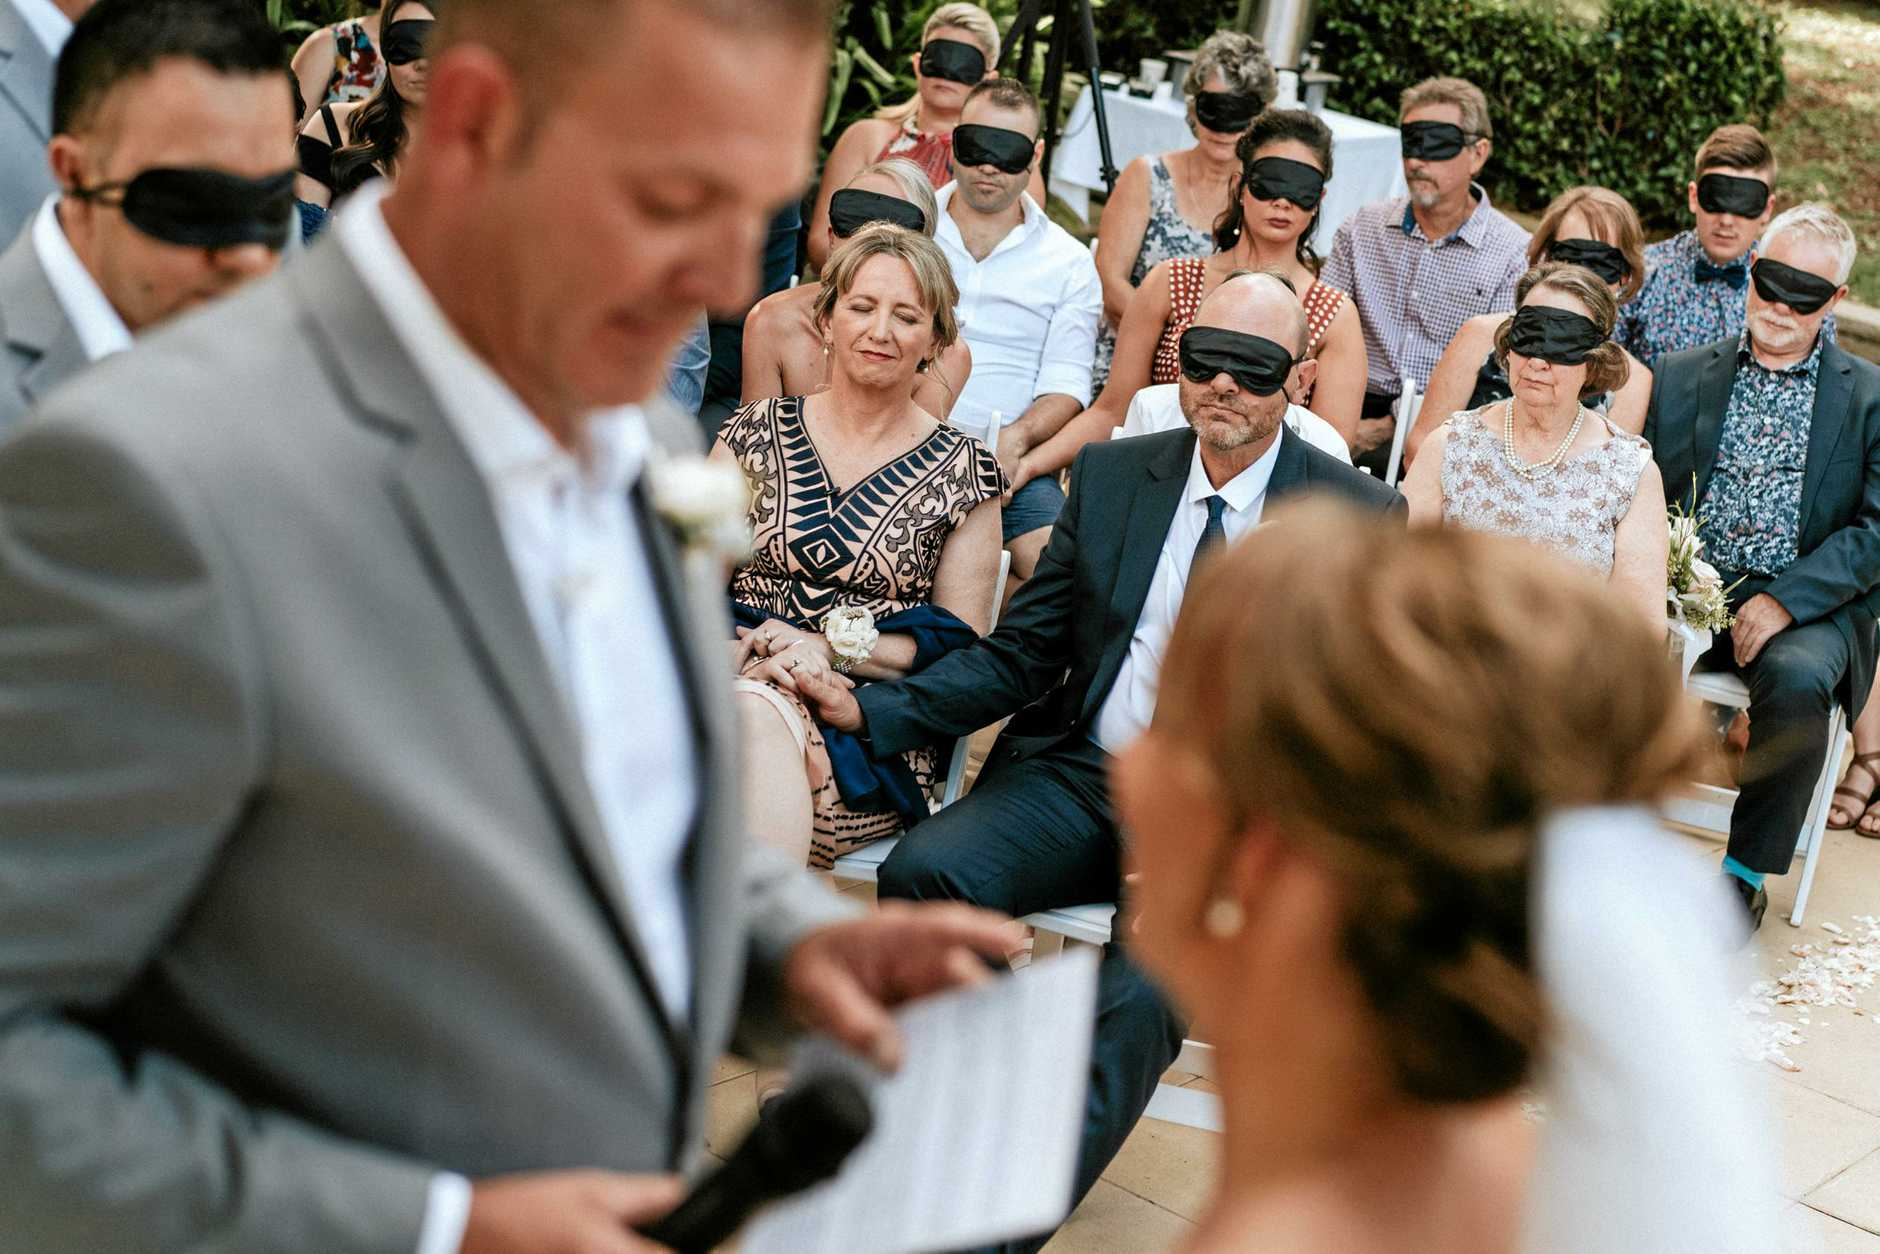 Guests were invited to slip on blindfolds while the vows were read to experience the moment how Steph was.